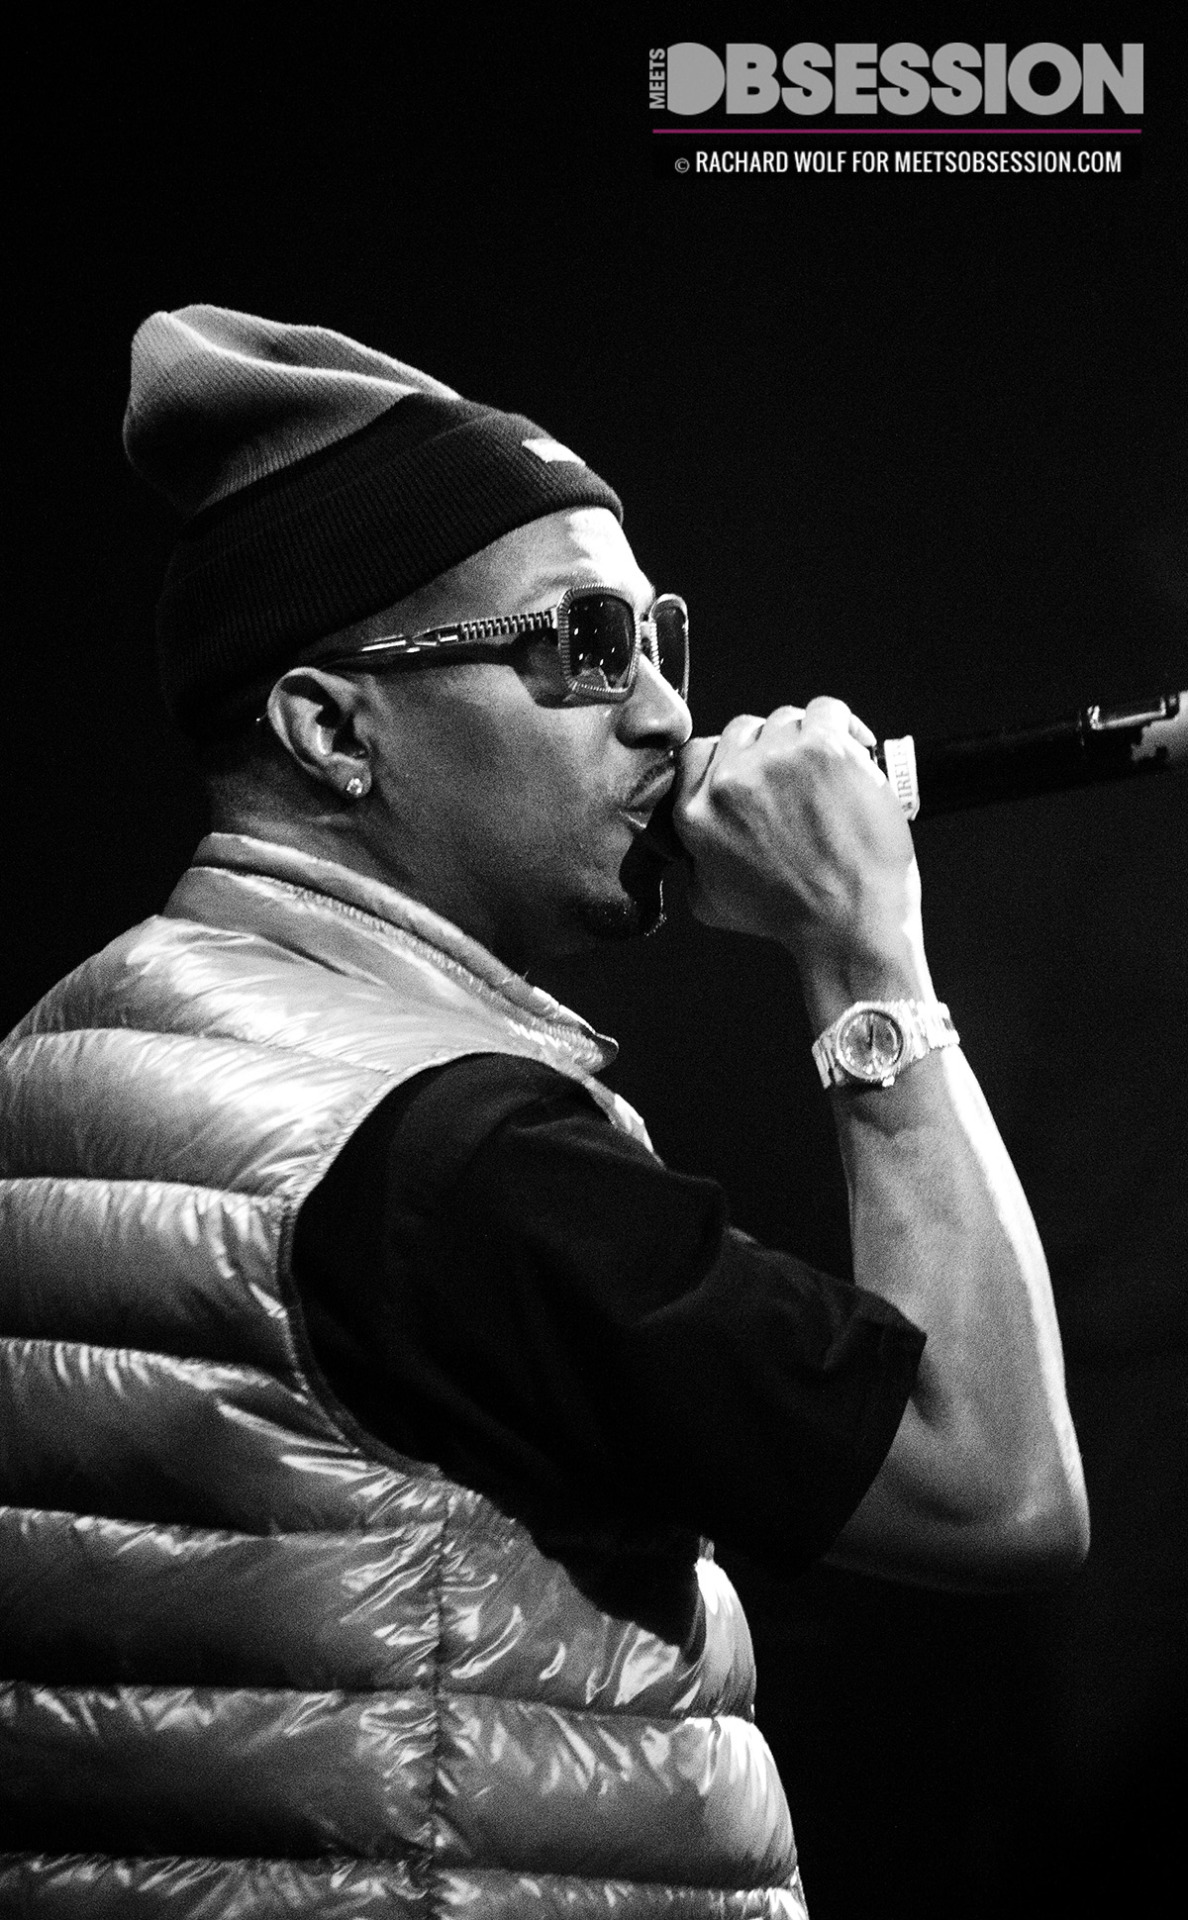 camsfilms:  Juicy J performing live at Howard Theater last night! 5/12/13 —Rachard Wolf Photography